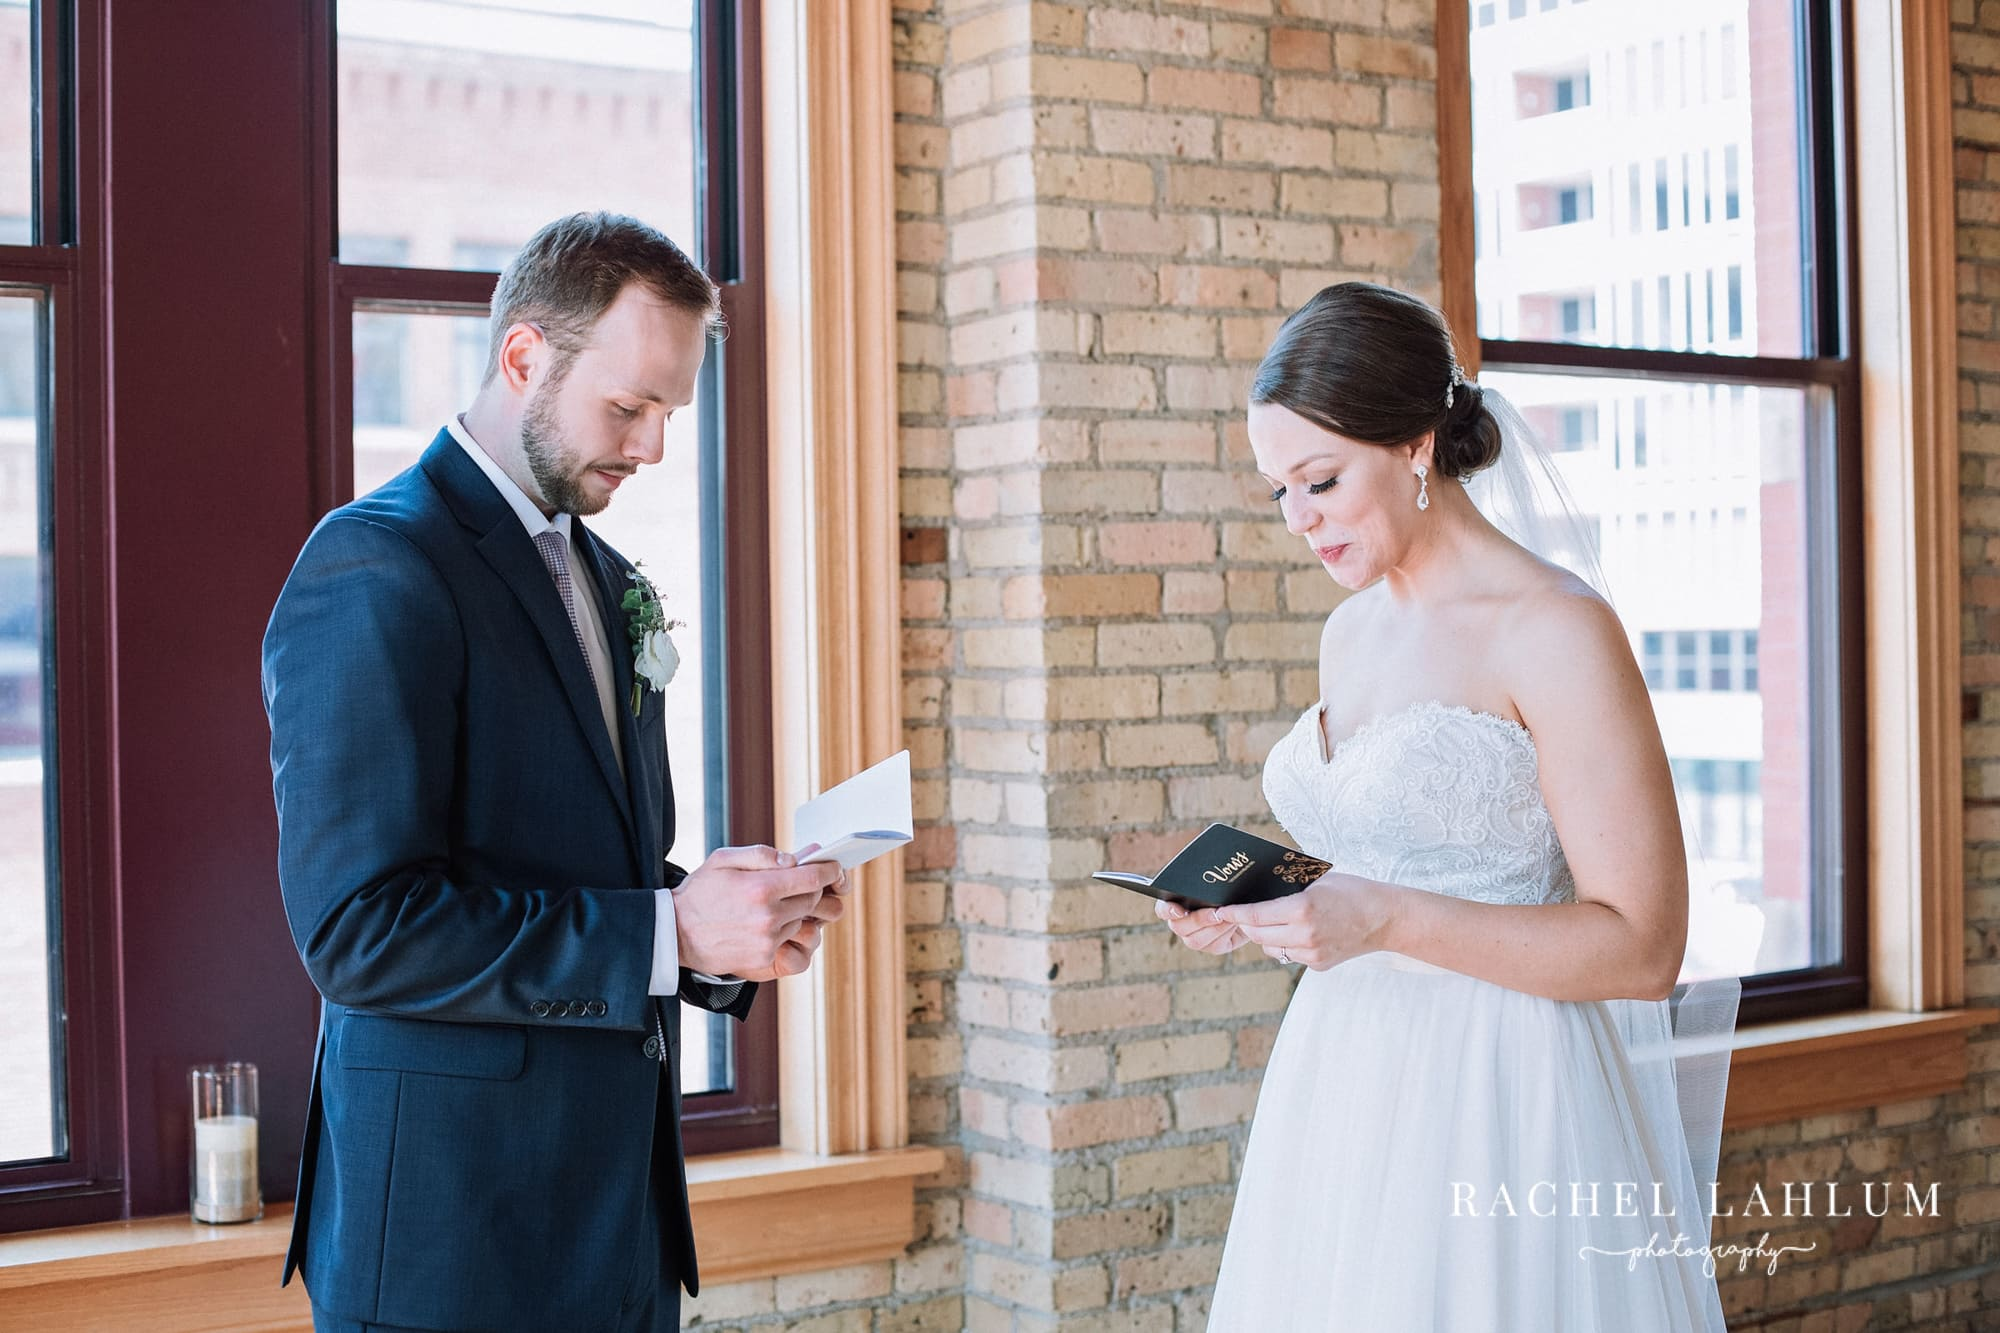 Bride and groom read notes they've exchanged.